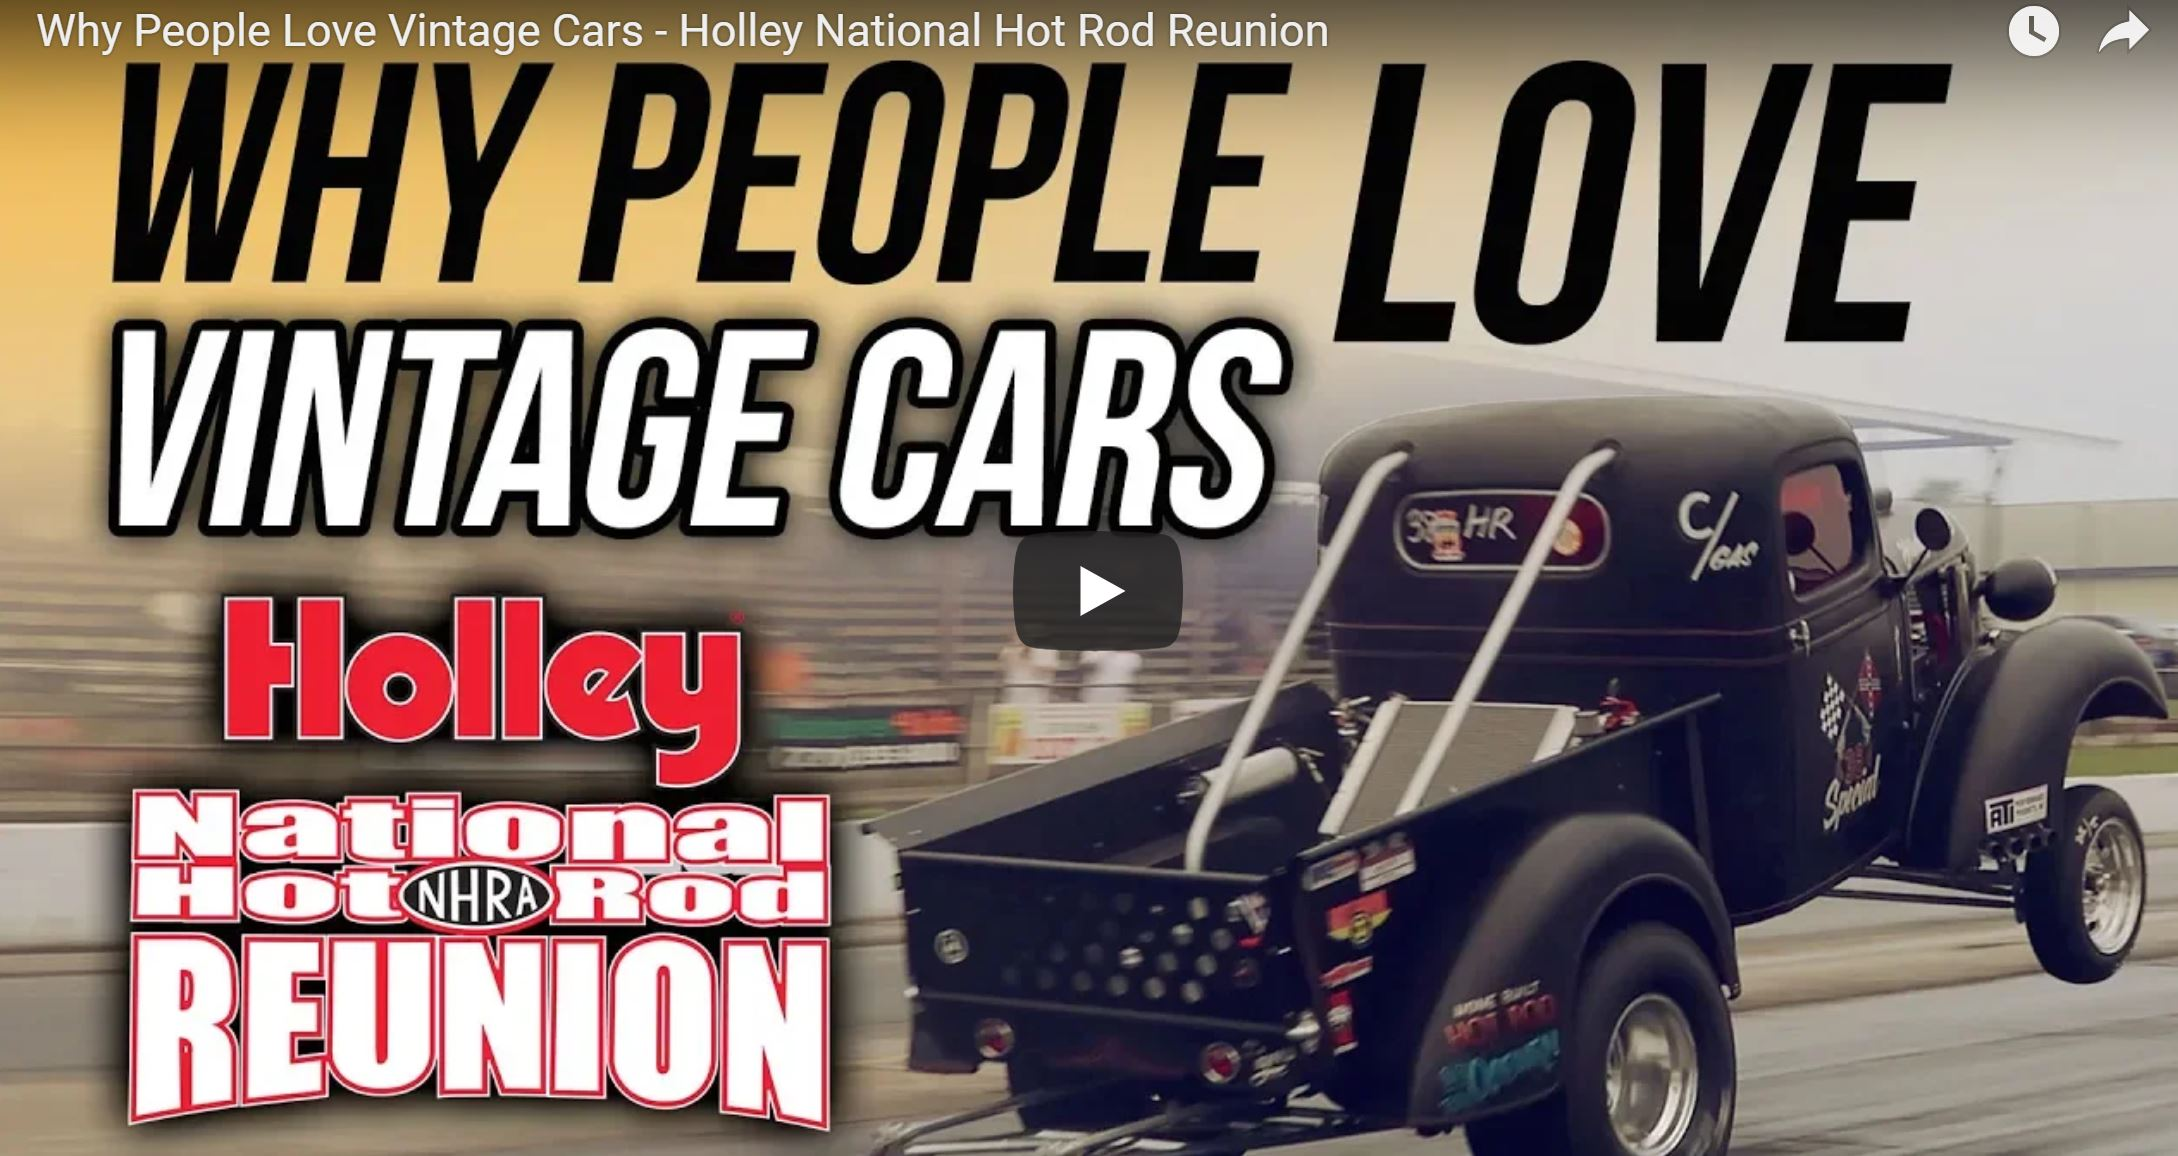 Here's Why People At The Hot Rod Reunion Love Vintage Cars